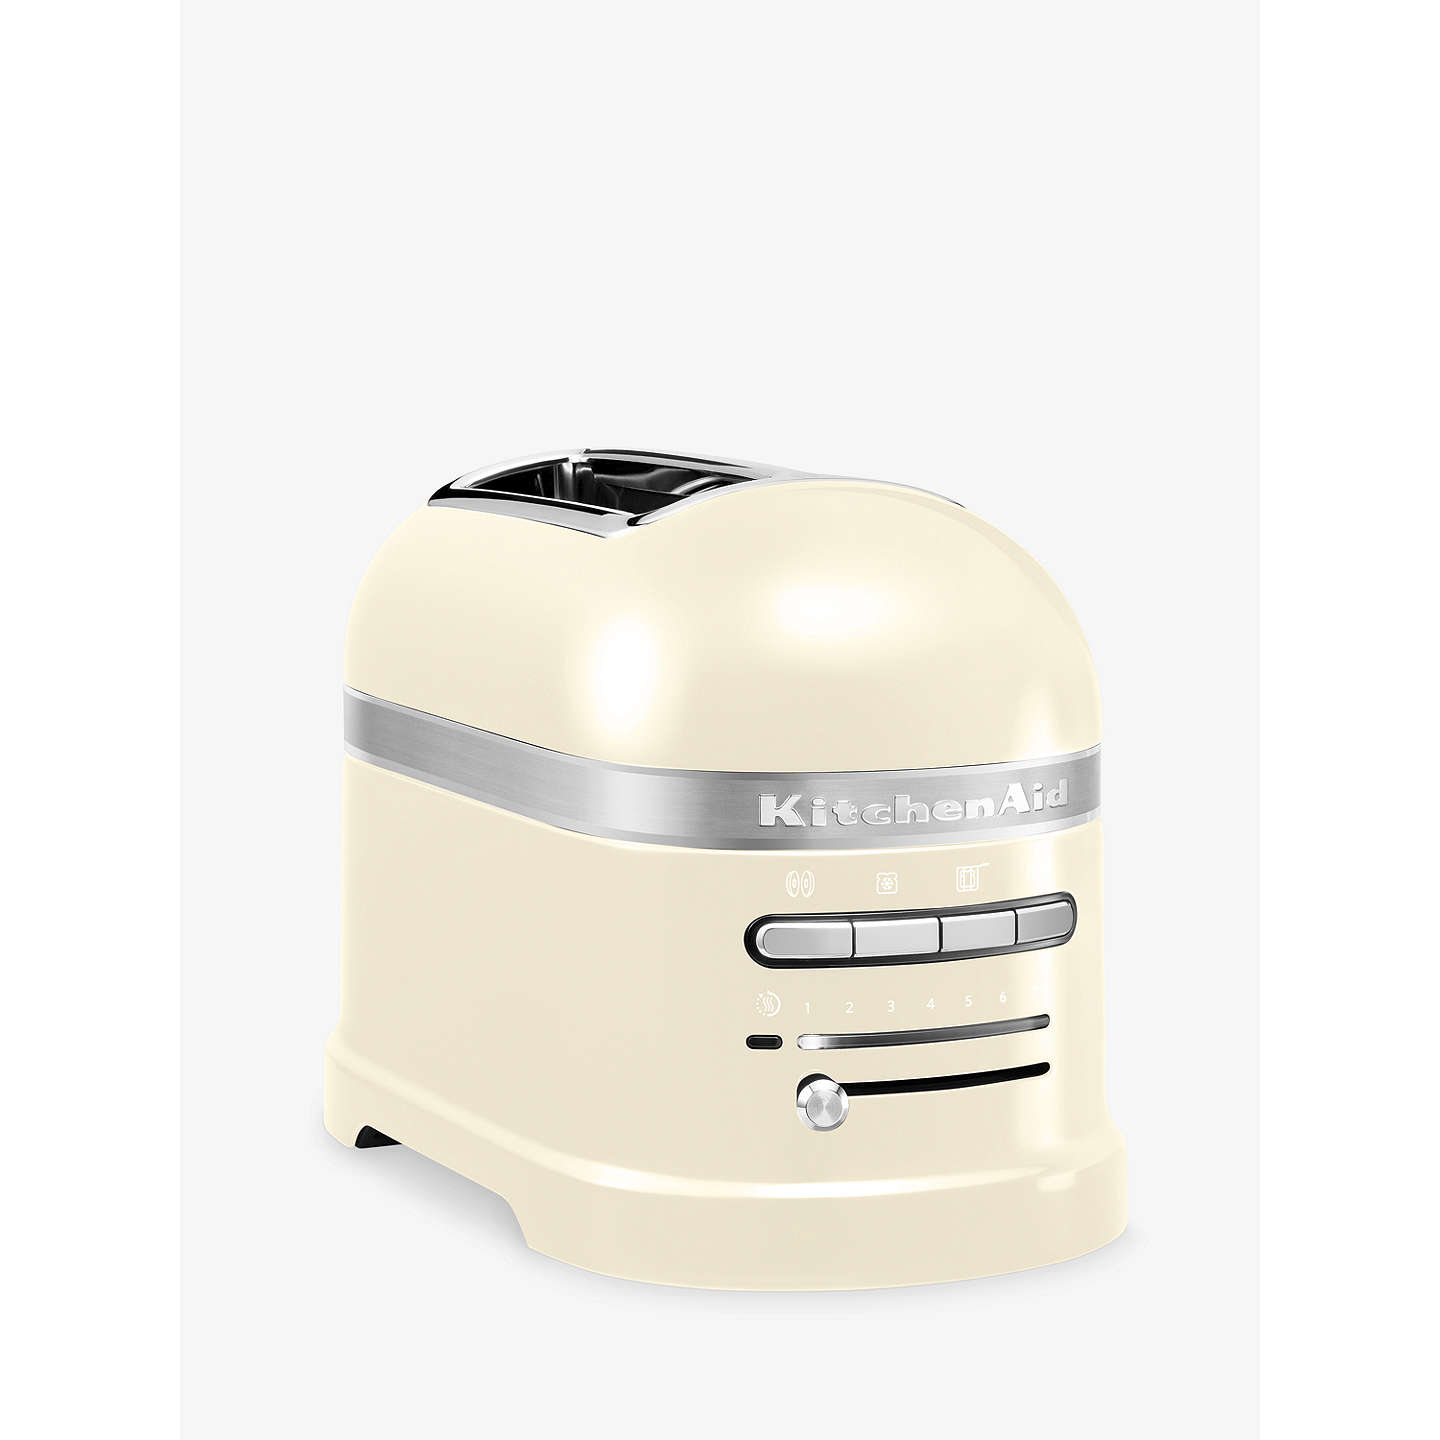 zdif and toasters of kitchenaid onyx ideas four kmtob amazing aid slice styles black manual toaster with lift kitchen